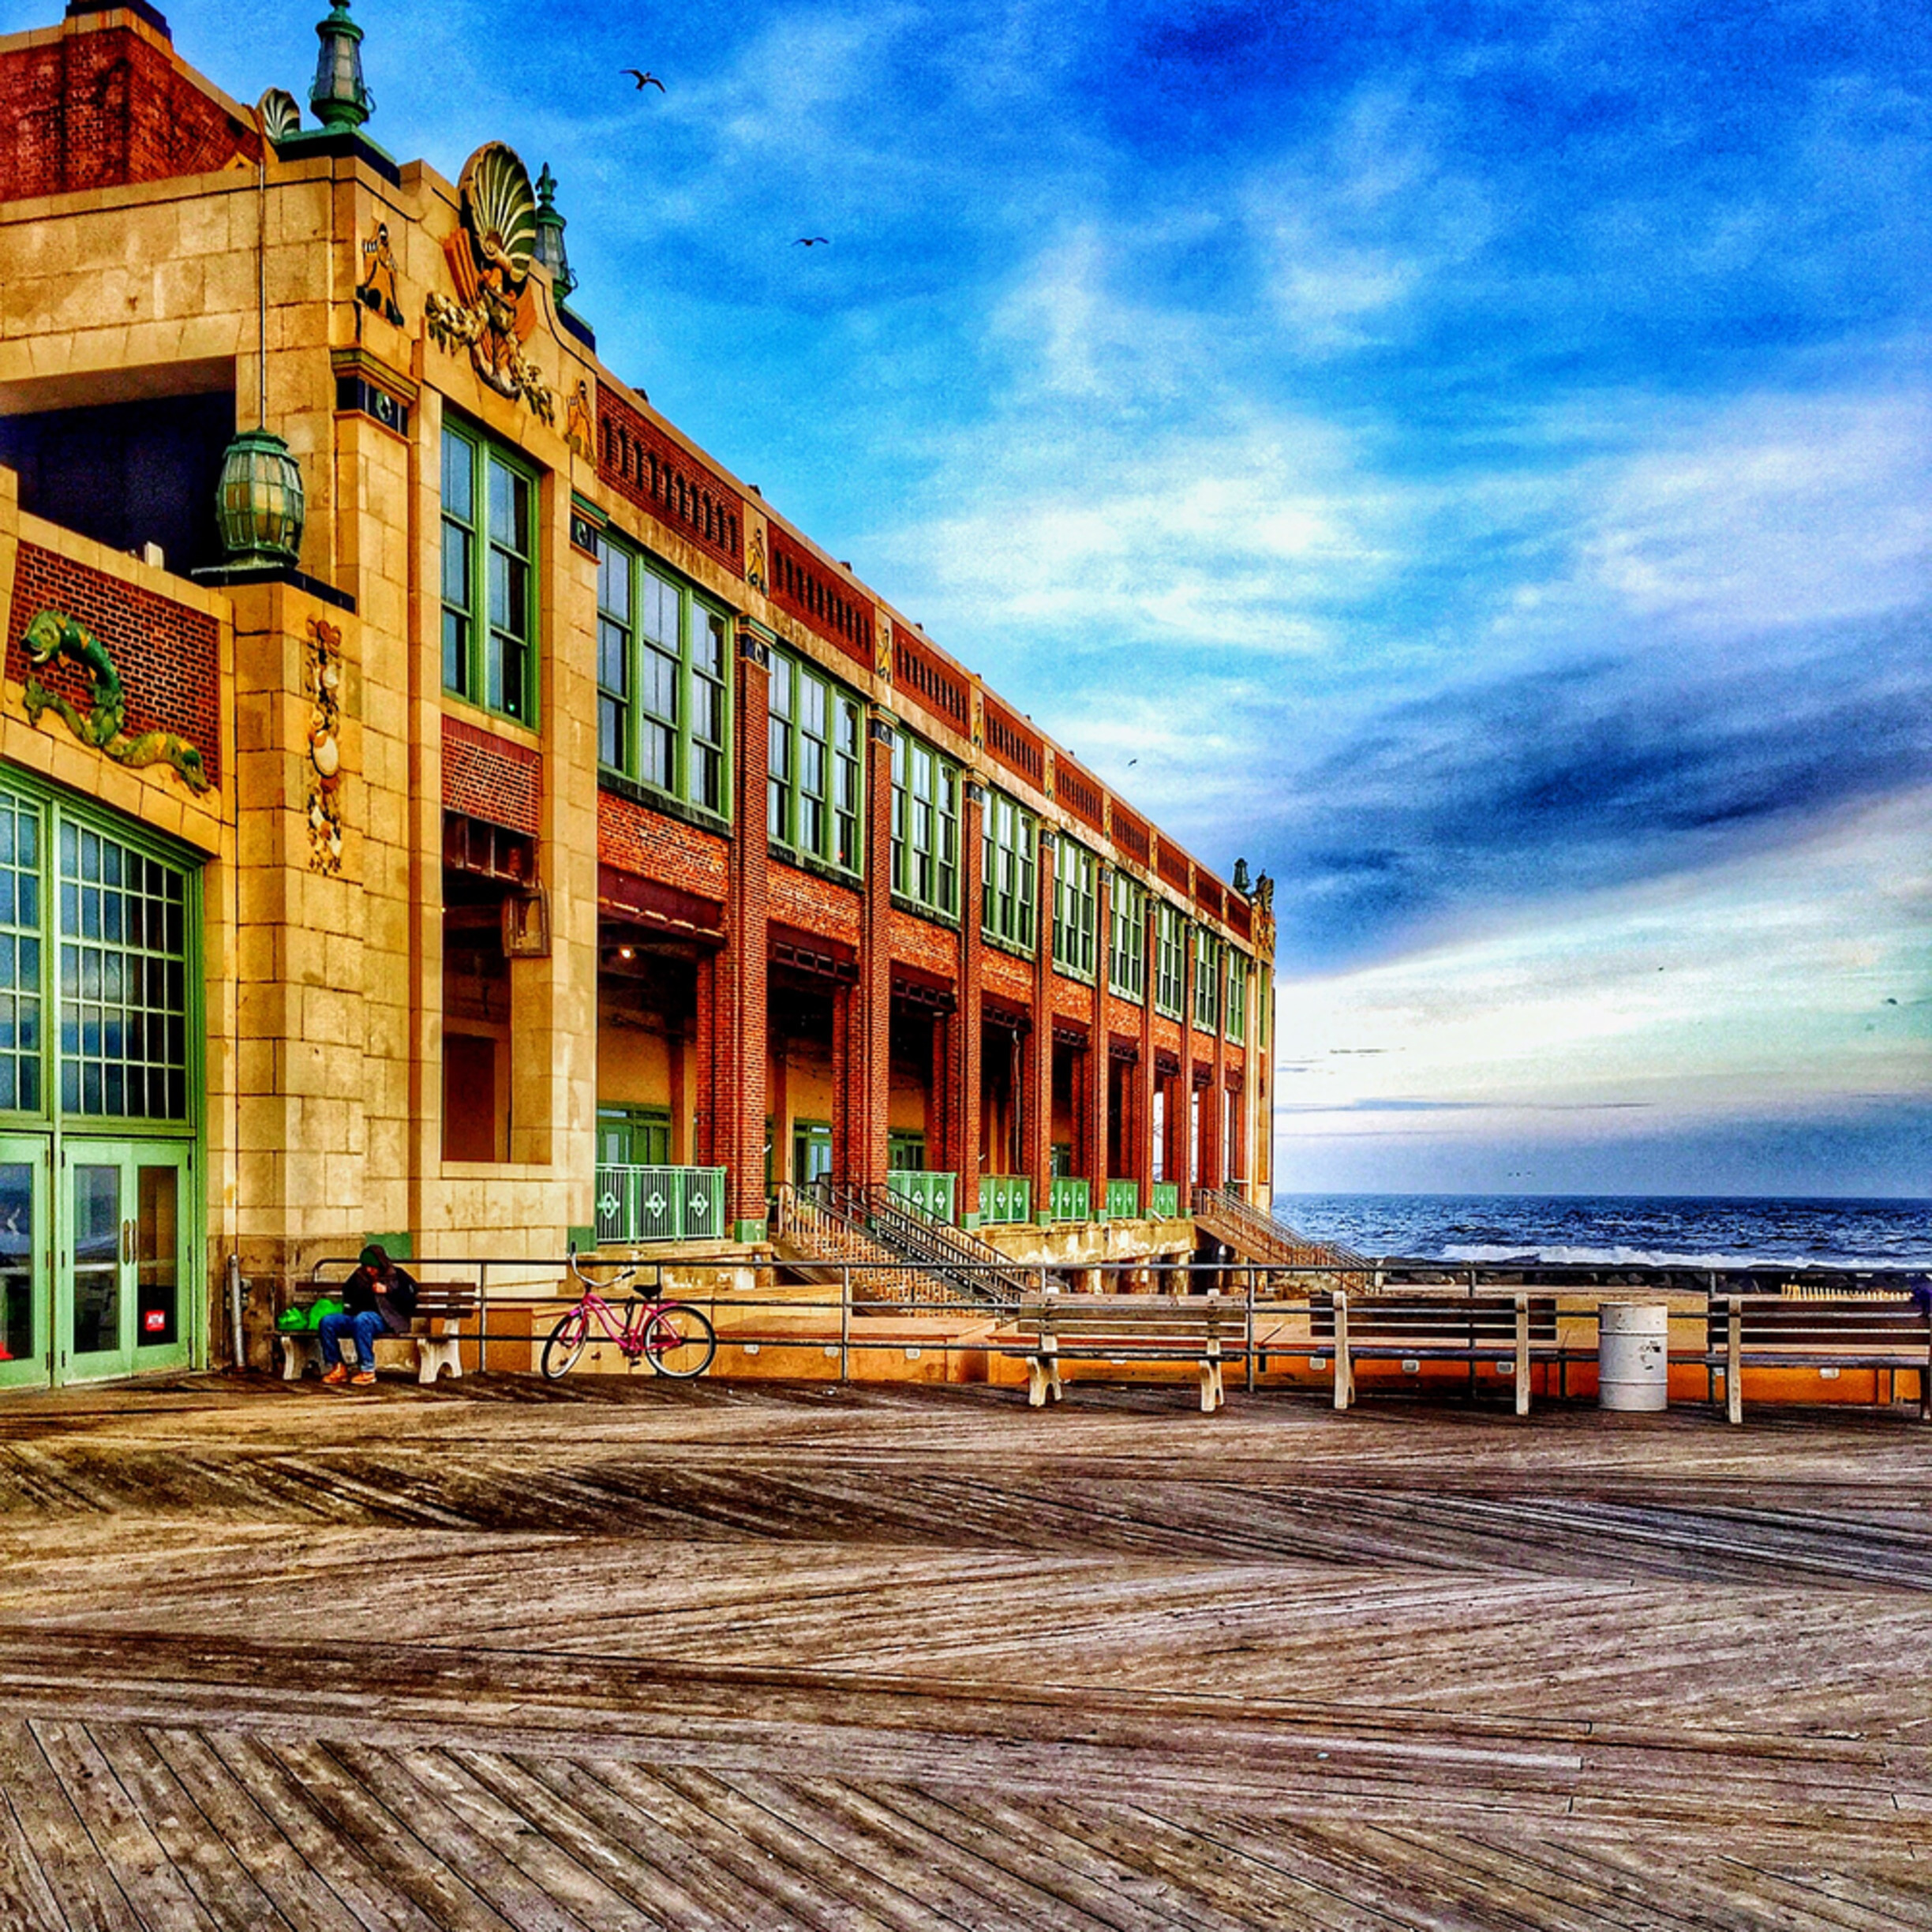 On the boardwalk at asbury park convention hall uc7vfp